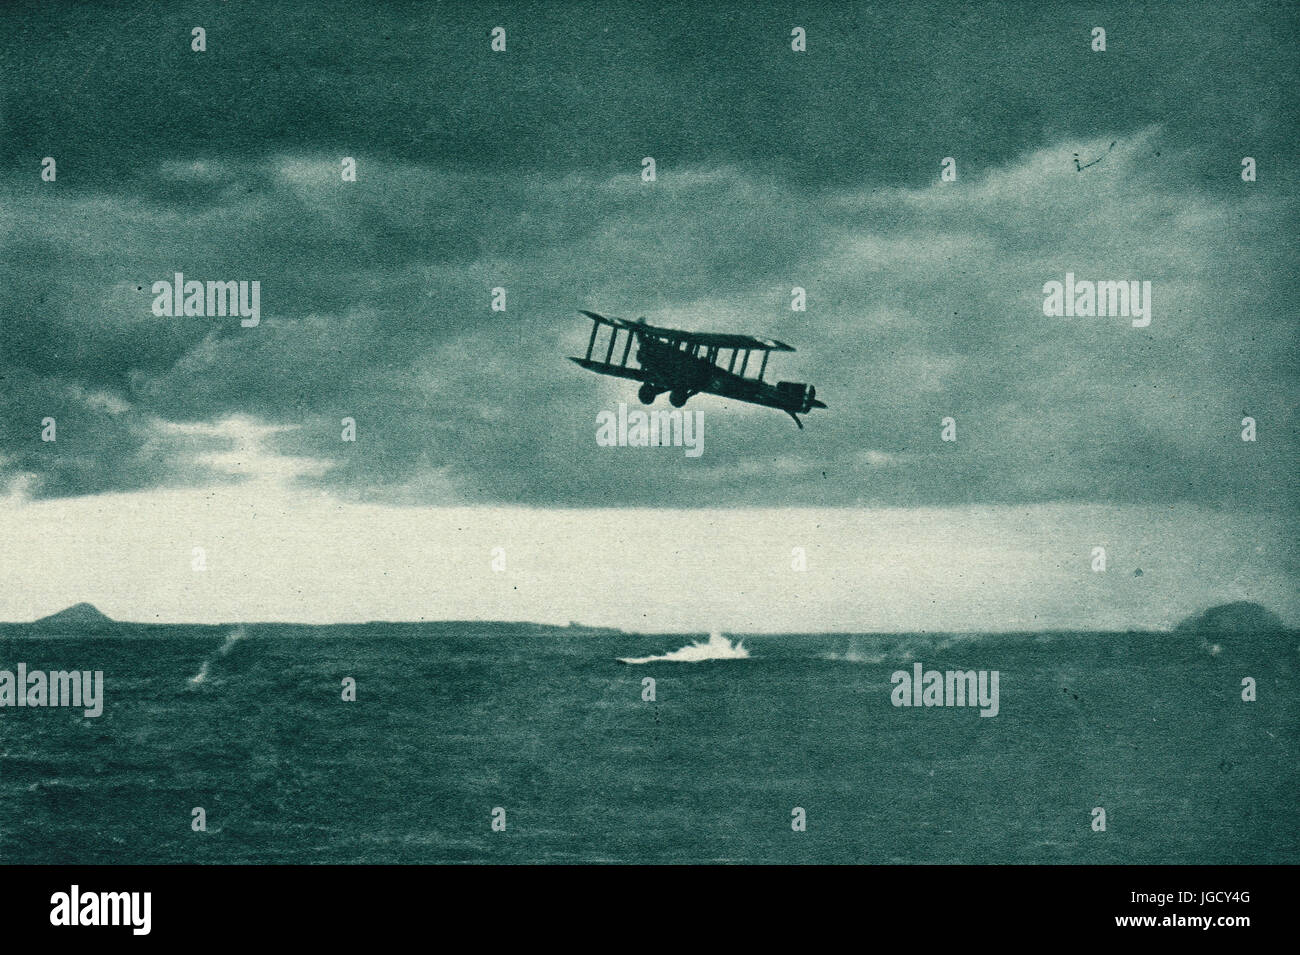 Torpedo Plane High Resolution Stock Photography And Images Alamy